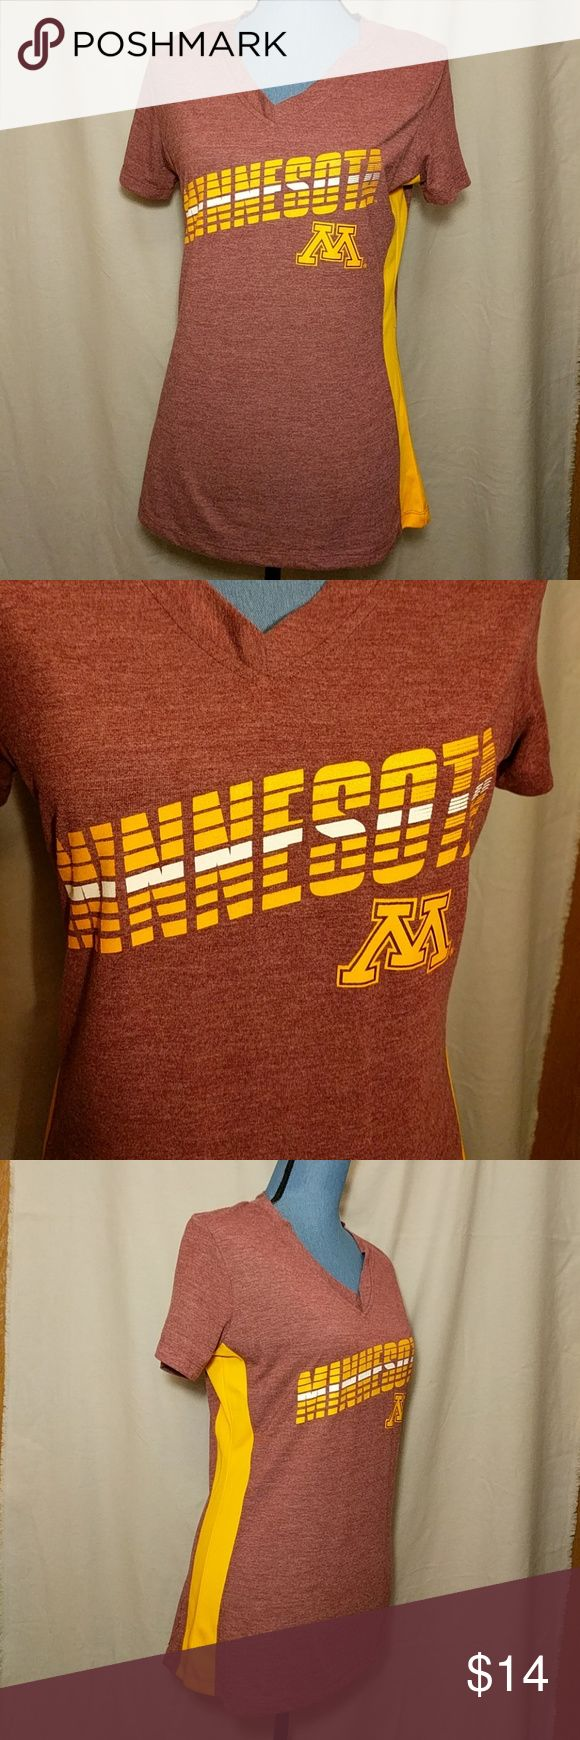 Minnesota Gophers Women's Tee University of Minnesota college team, Minnesota Gophers. Women's size Medium, V-neck tee. Colors are maroon and gold. Approximate flat lay measurements include: armpit to armpit is 19 inches, shoulder to sleeve is 7 inches, shoulder to bottom hem is 26.5 inches. Small snag on one side as shown in last photo. Rivalry Threads 91 Tops Tees - Short Sleeve